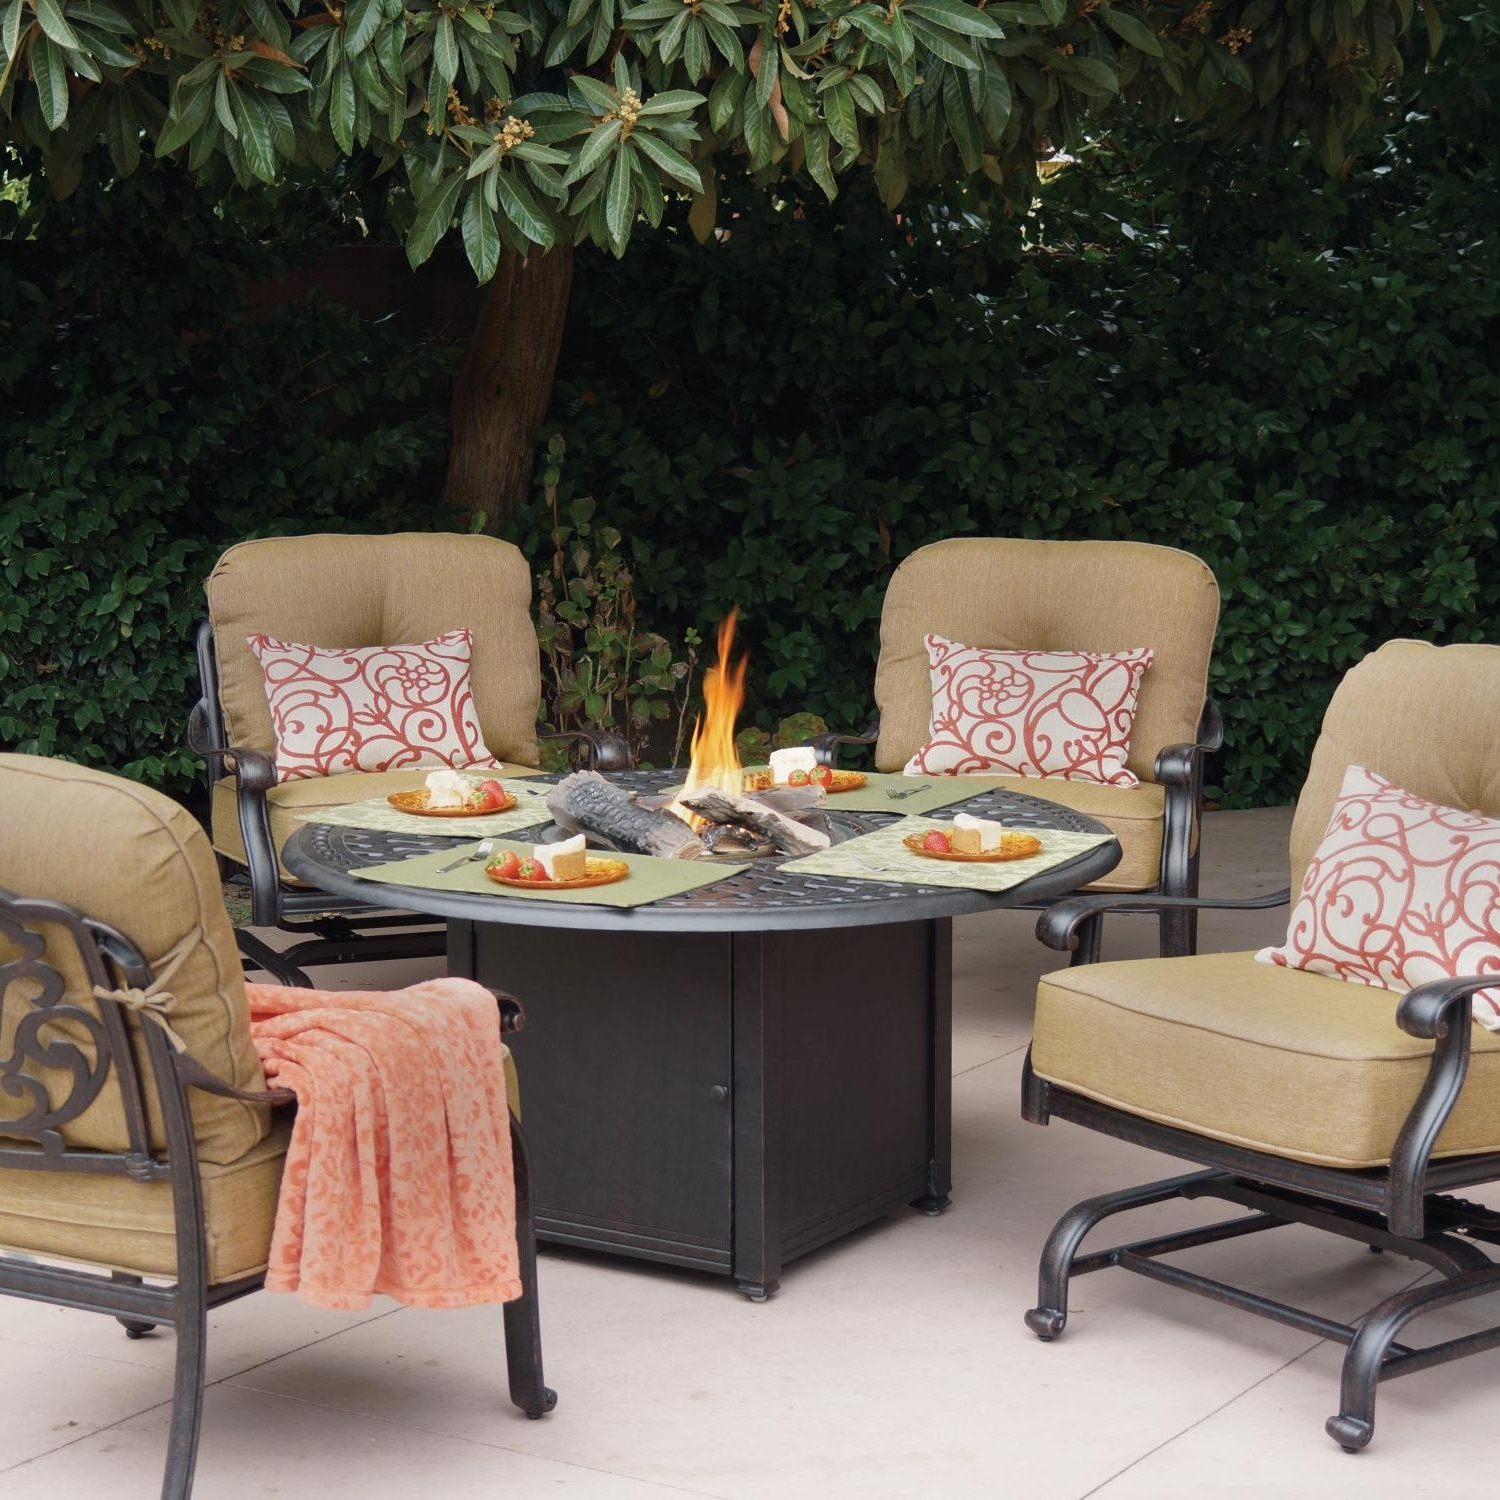 Patio Conversation Sets With Fire Pit Within Preferred Darlee Elisabeth 5 Piece Aluminum Patio Fire Pit Seating Set (View 17 of 20)